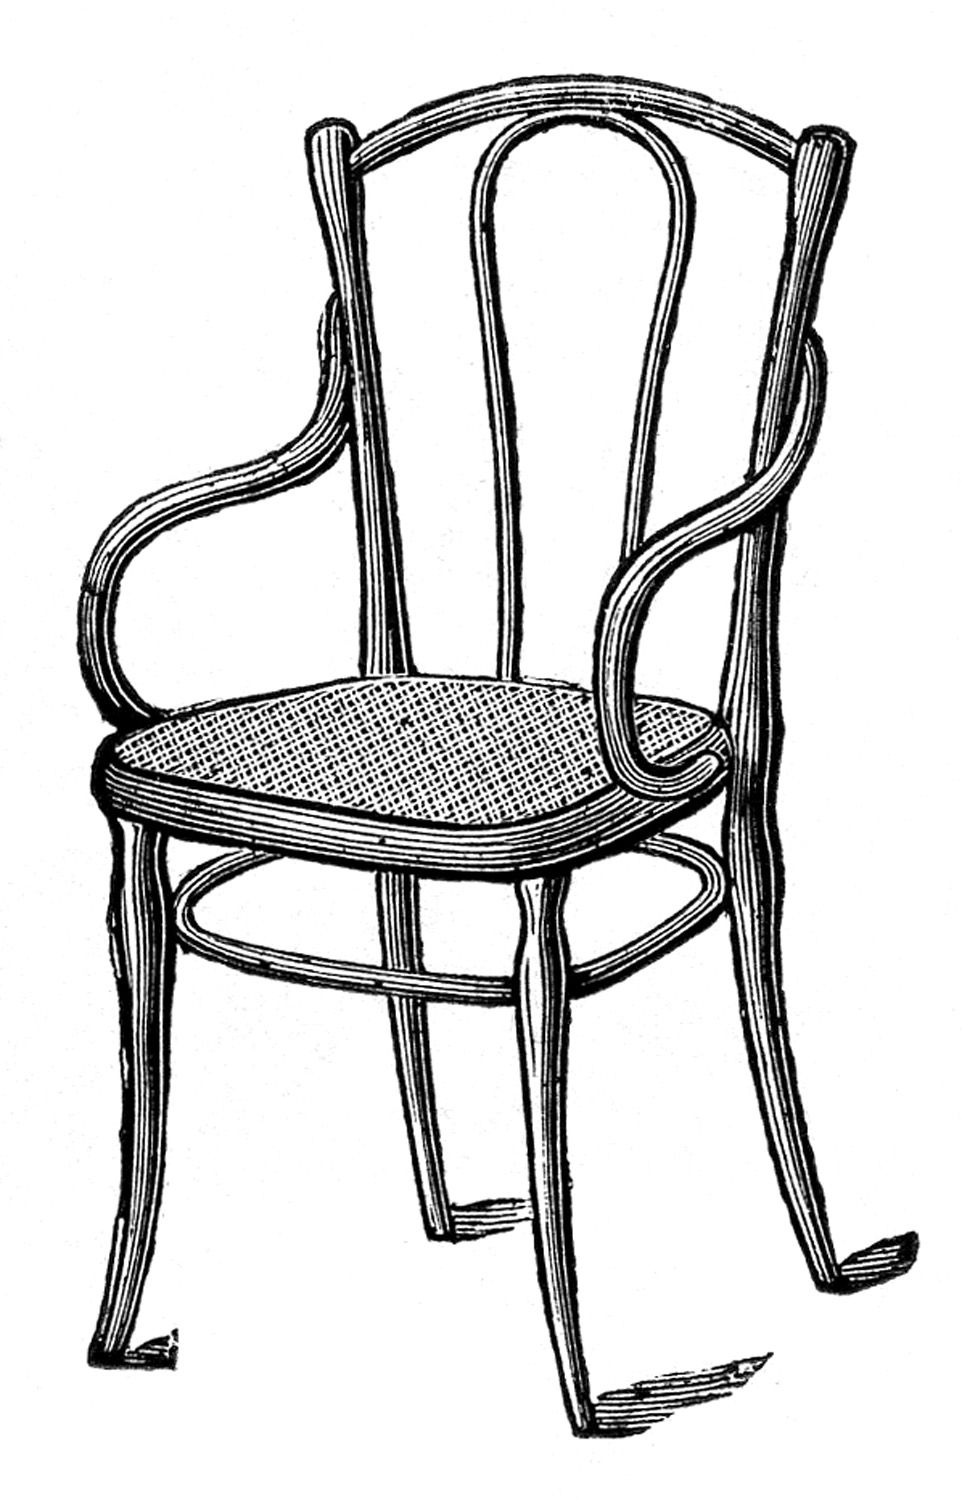 17 Chair Clipart Images The Graphics Fairy In 2020 Vintage Chairs Antique Images Clip Art Vintage